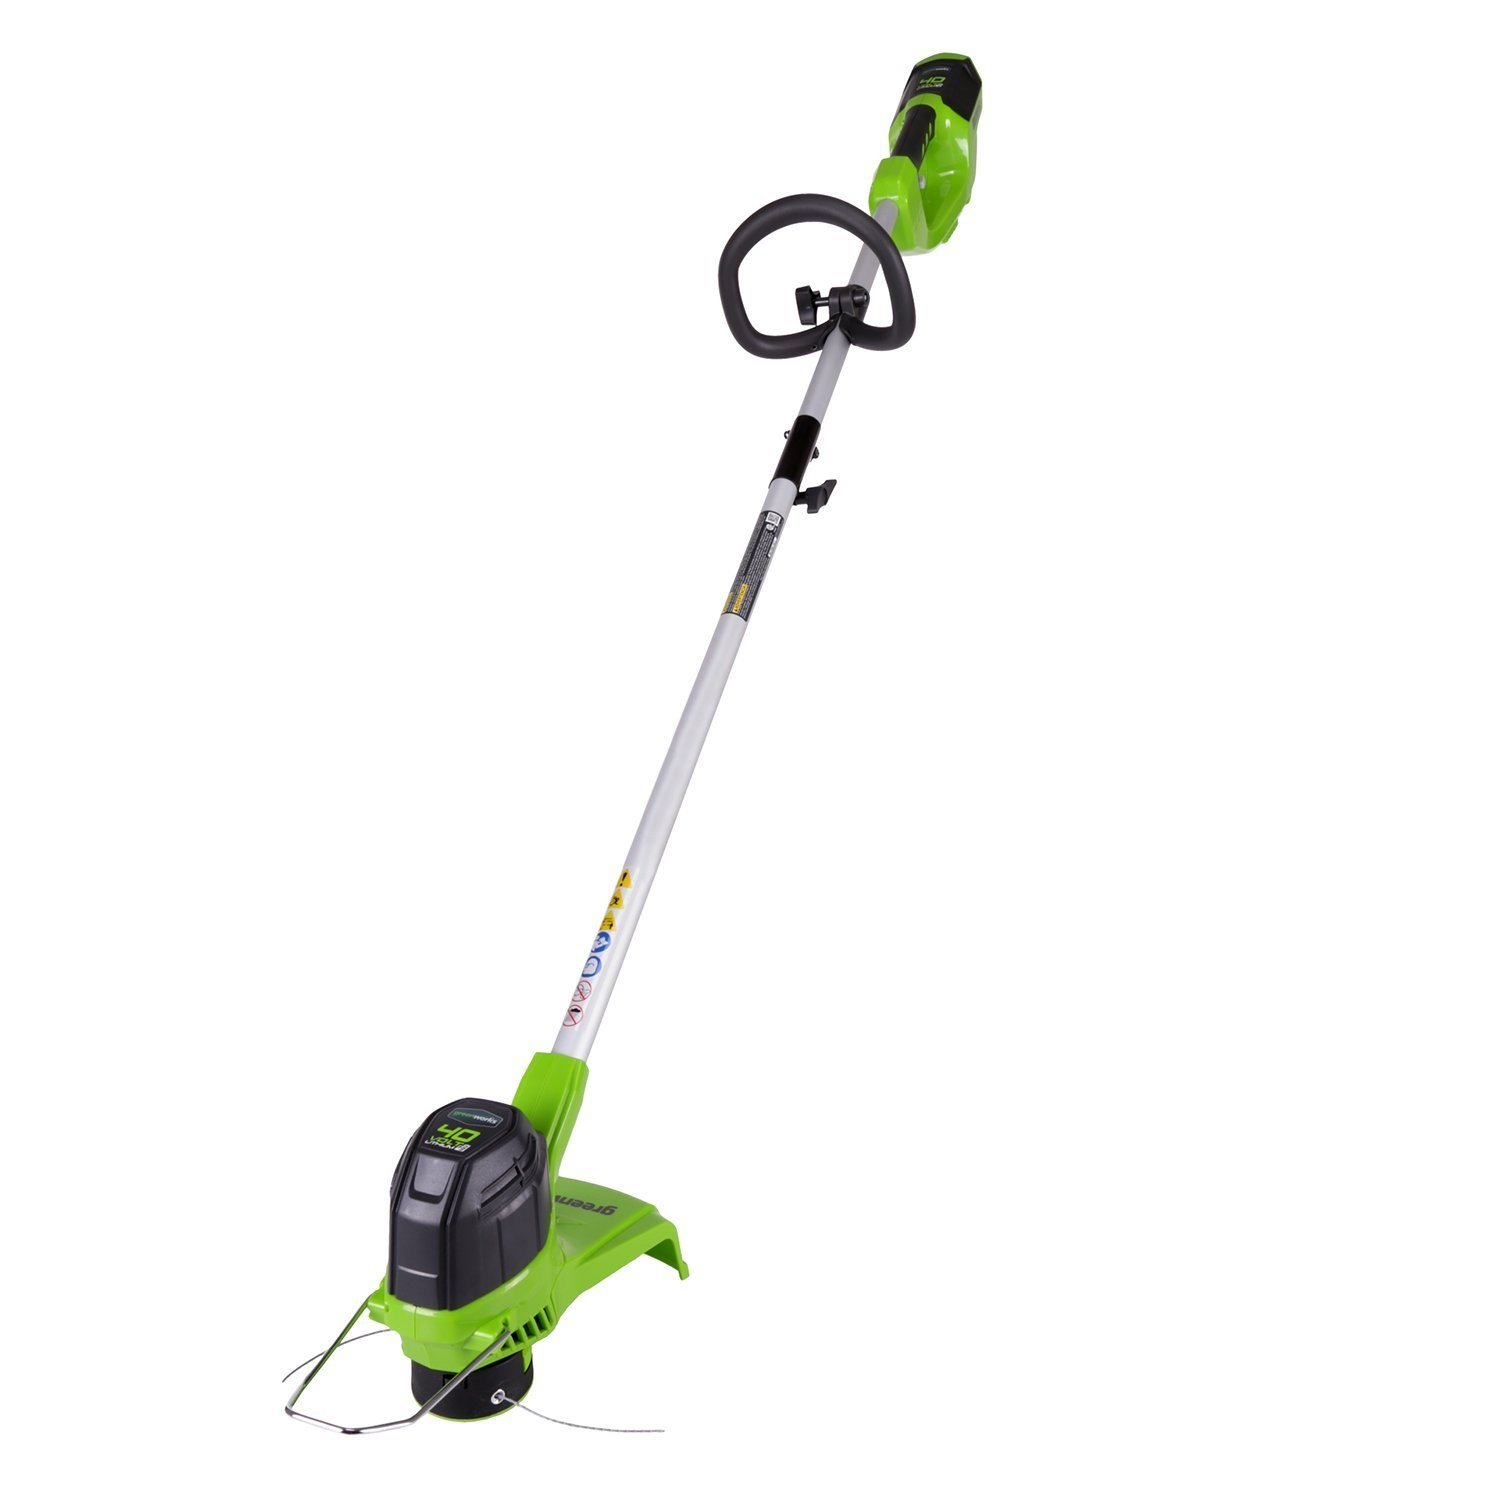 Greenworks 12-Inch 40V Cordless String Trimmer, Battery Not Included BST4000